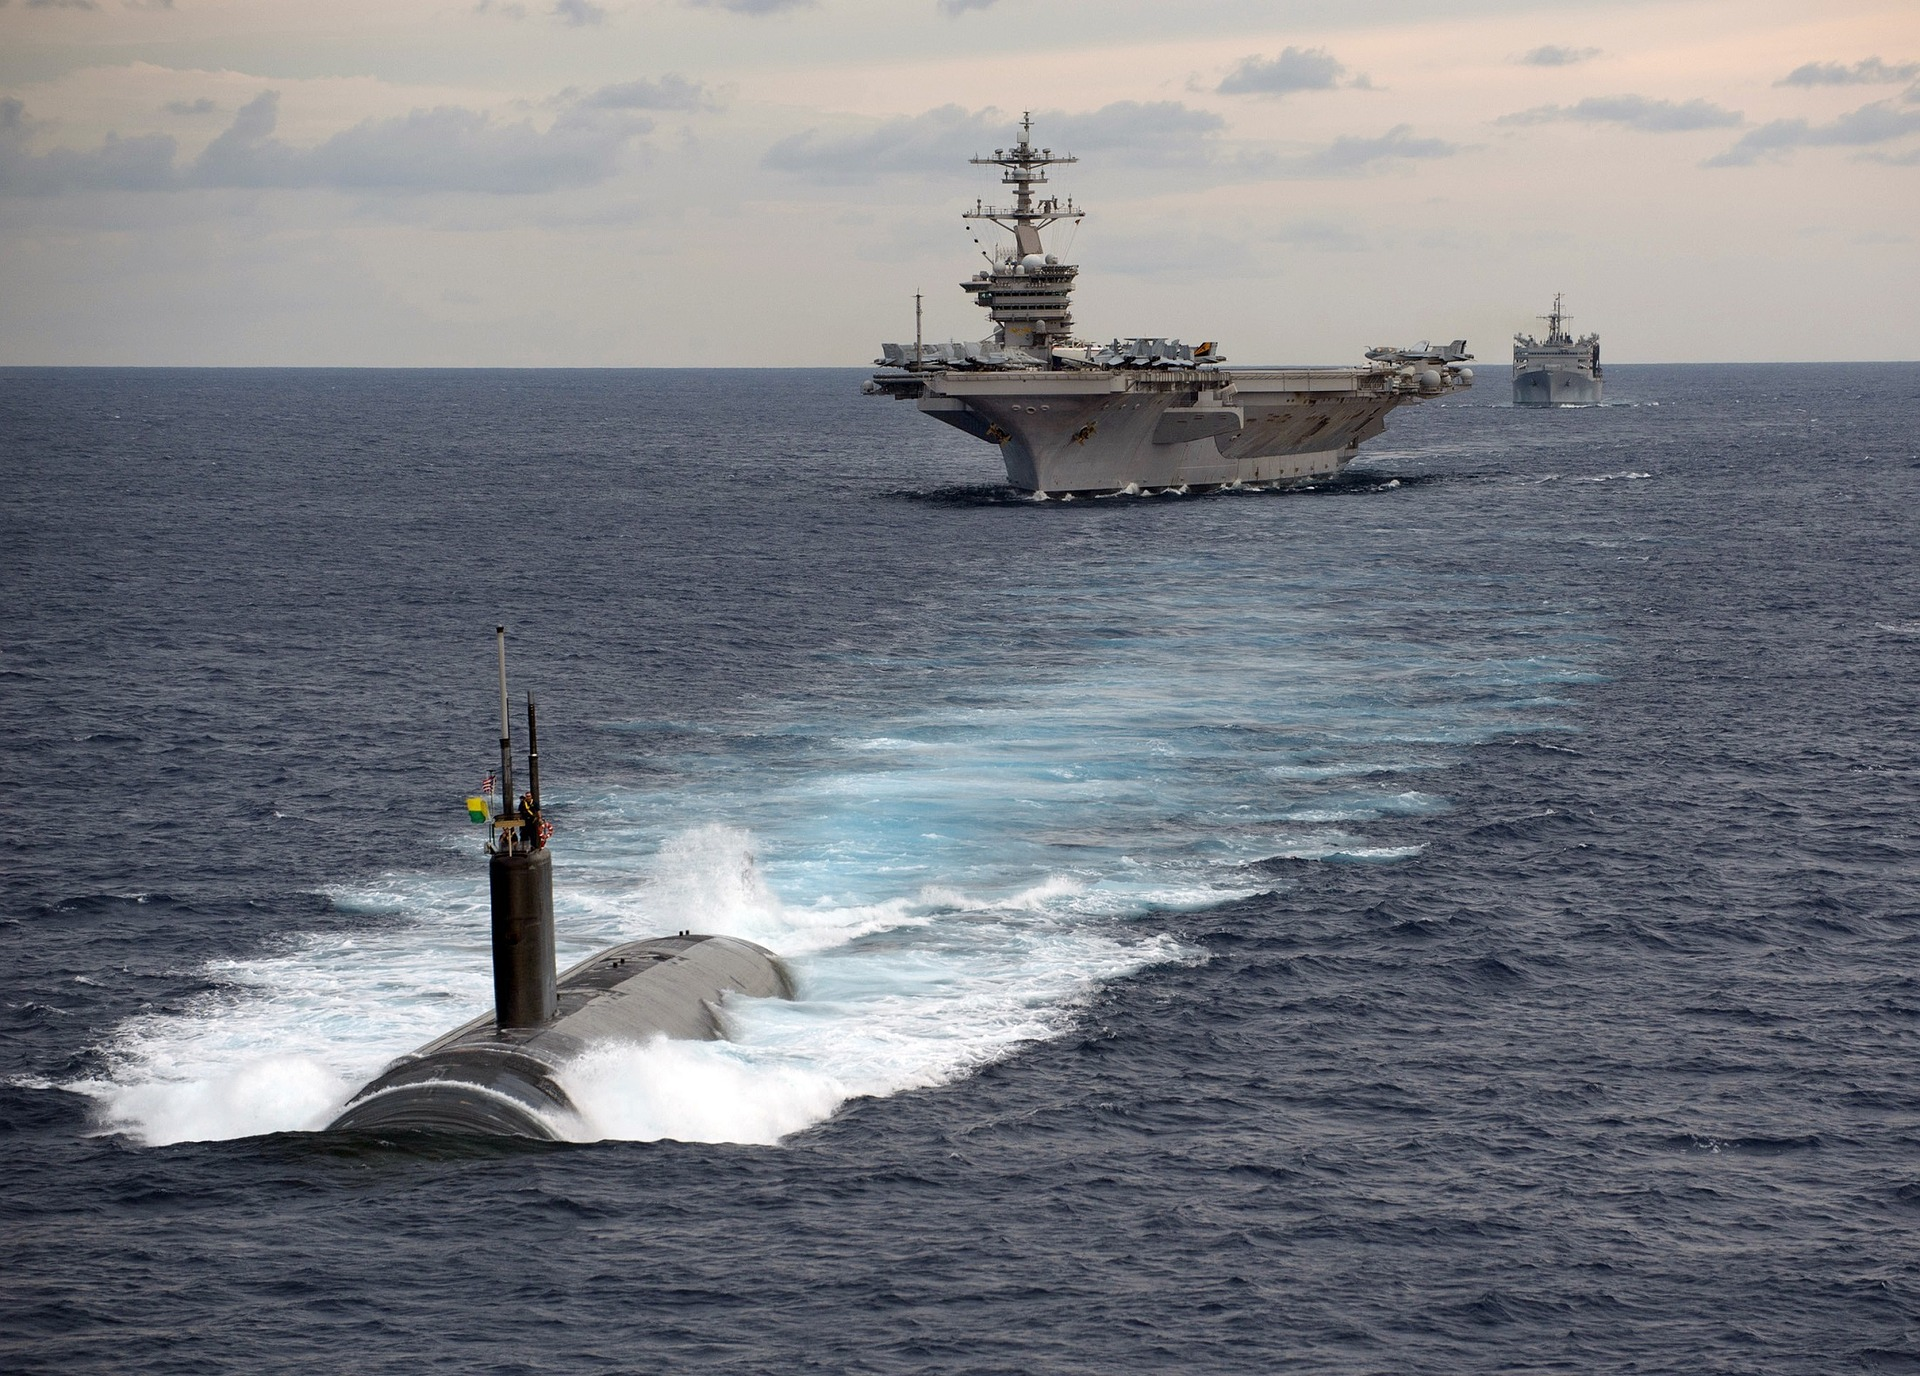 Rising and sinking of Submarines and the floating of Aircraft Carriers is based on the Archimedes' Principle